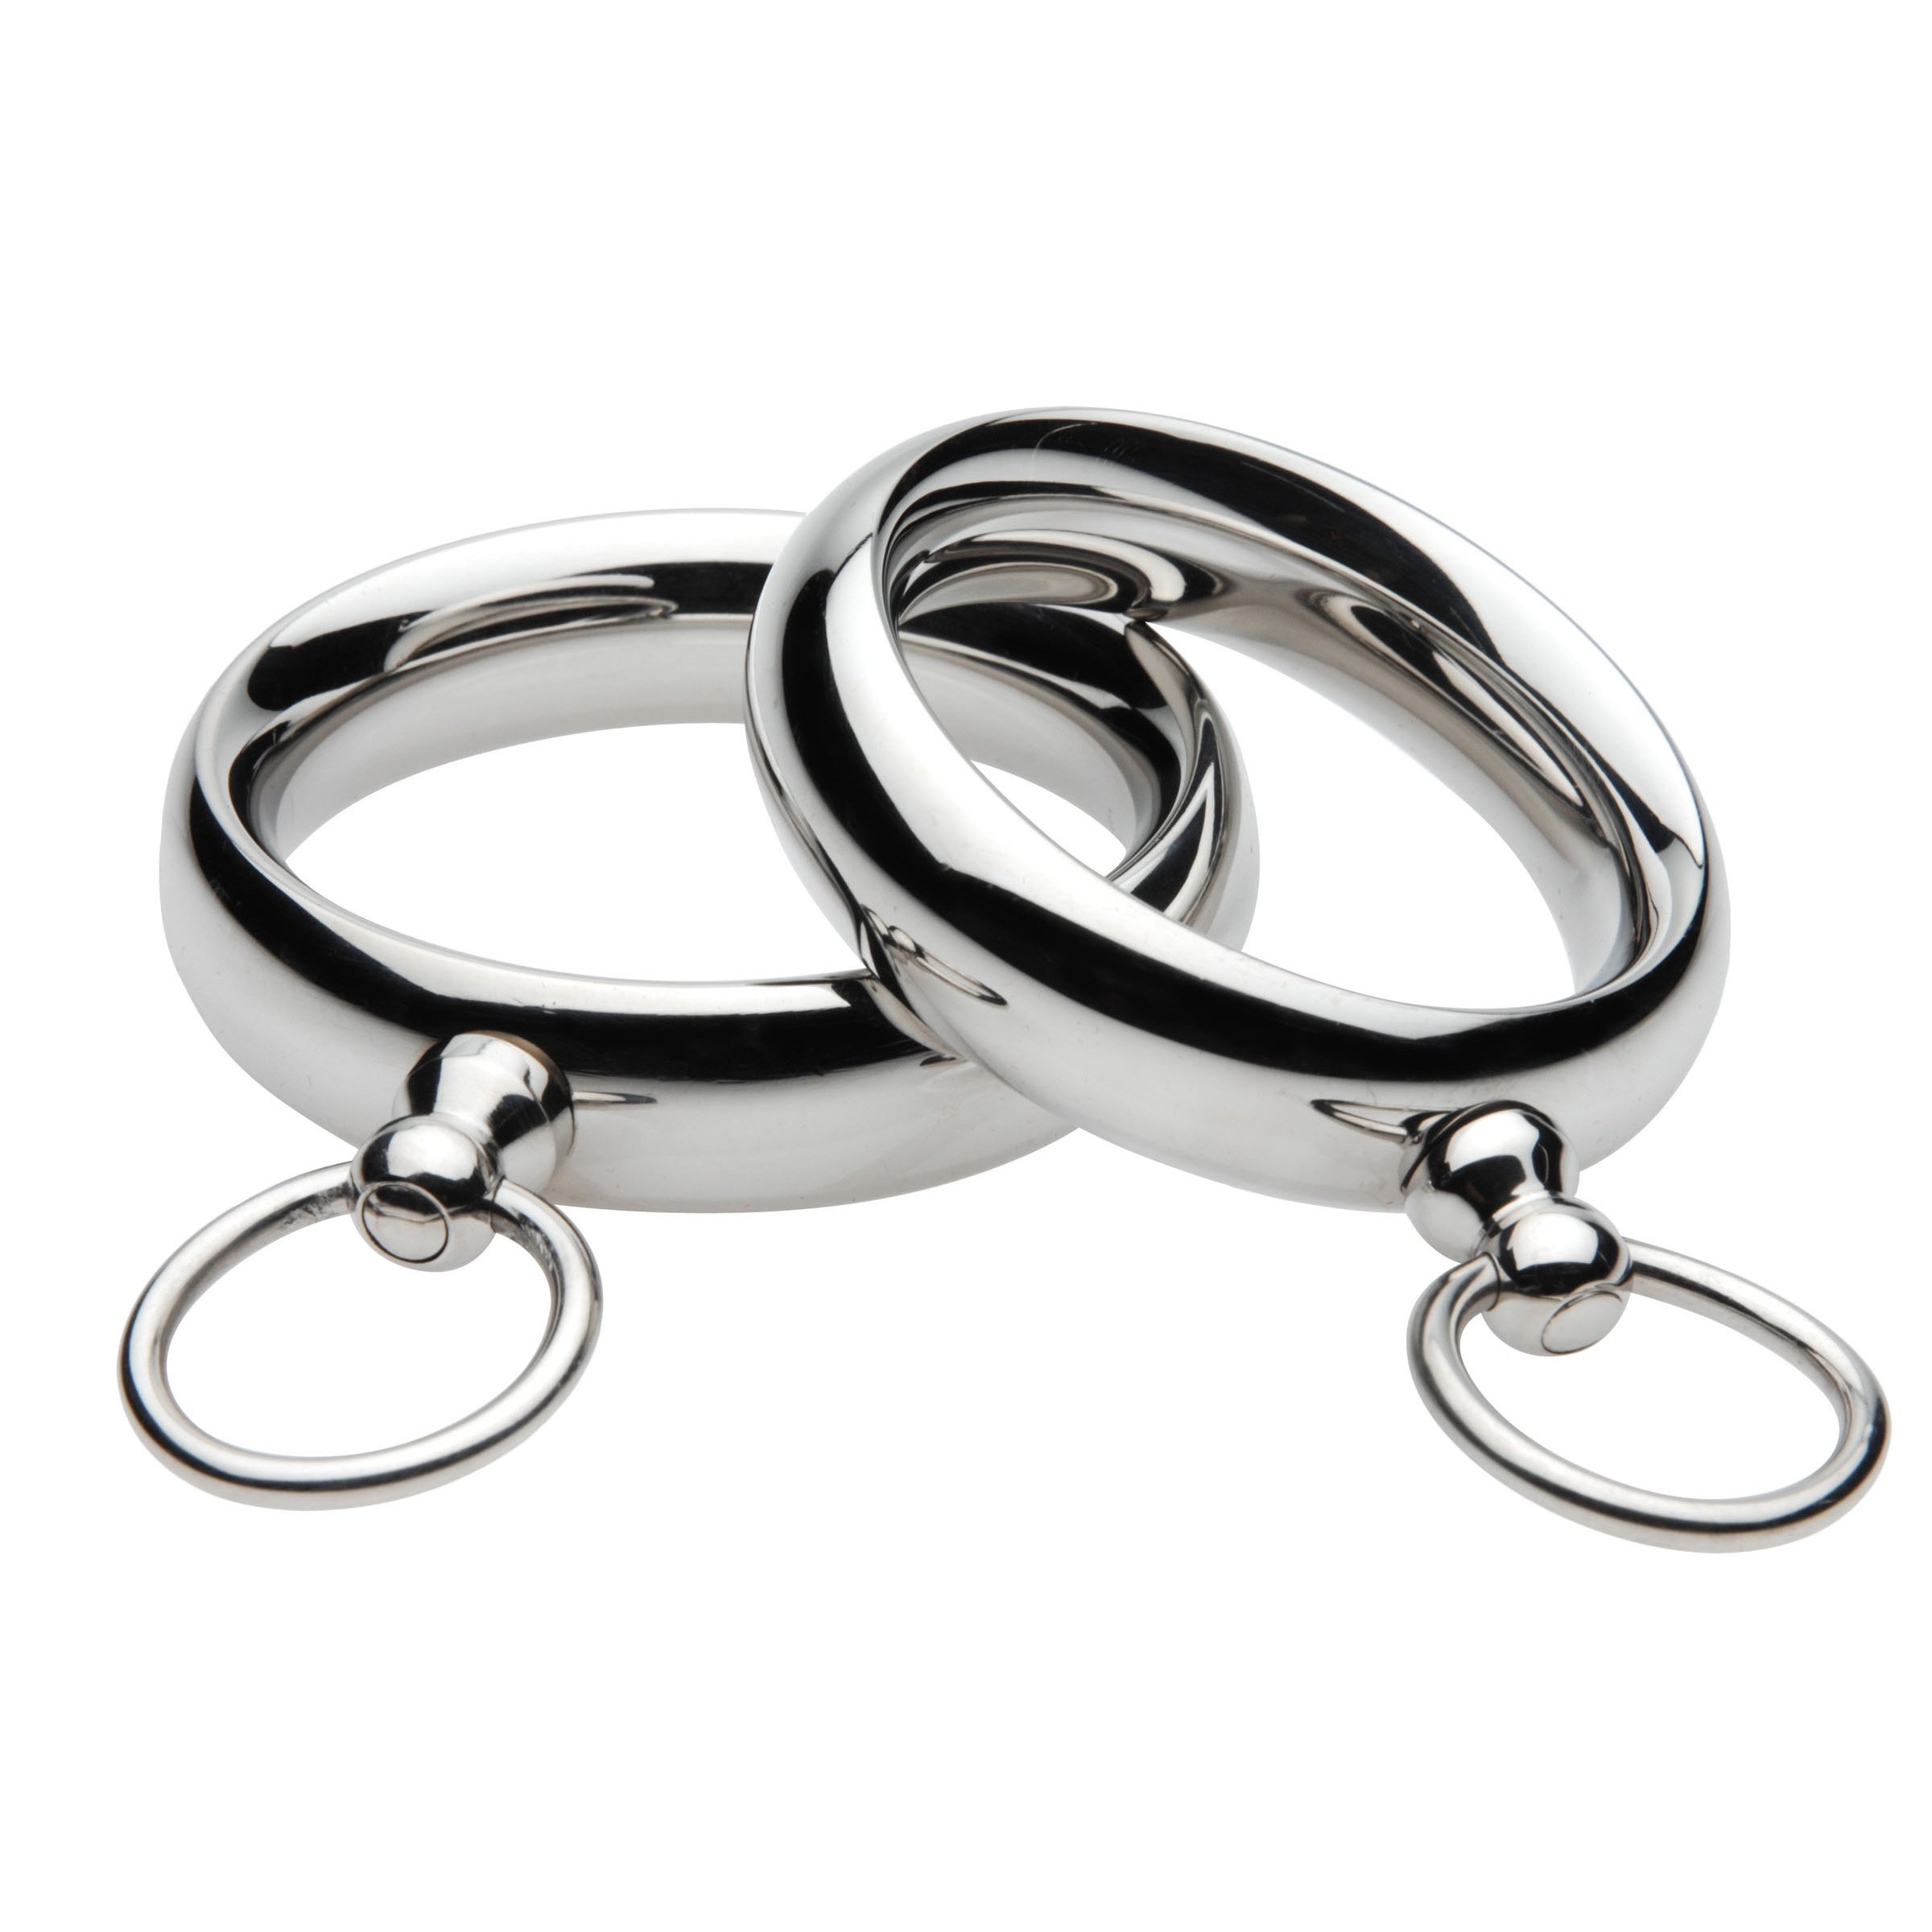 Lead Me Stainless Steel Cock Ring- 1.95 Inch